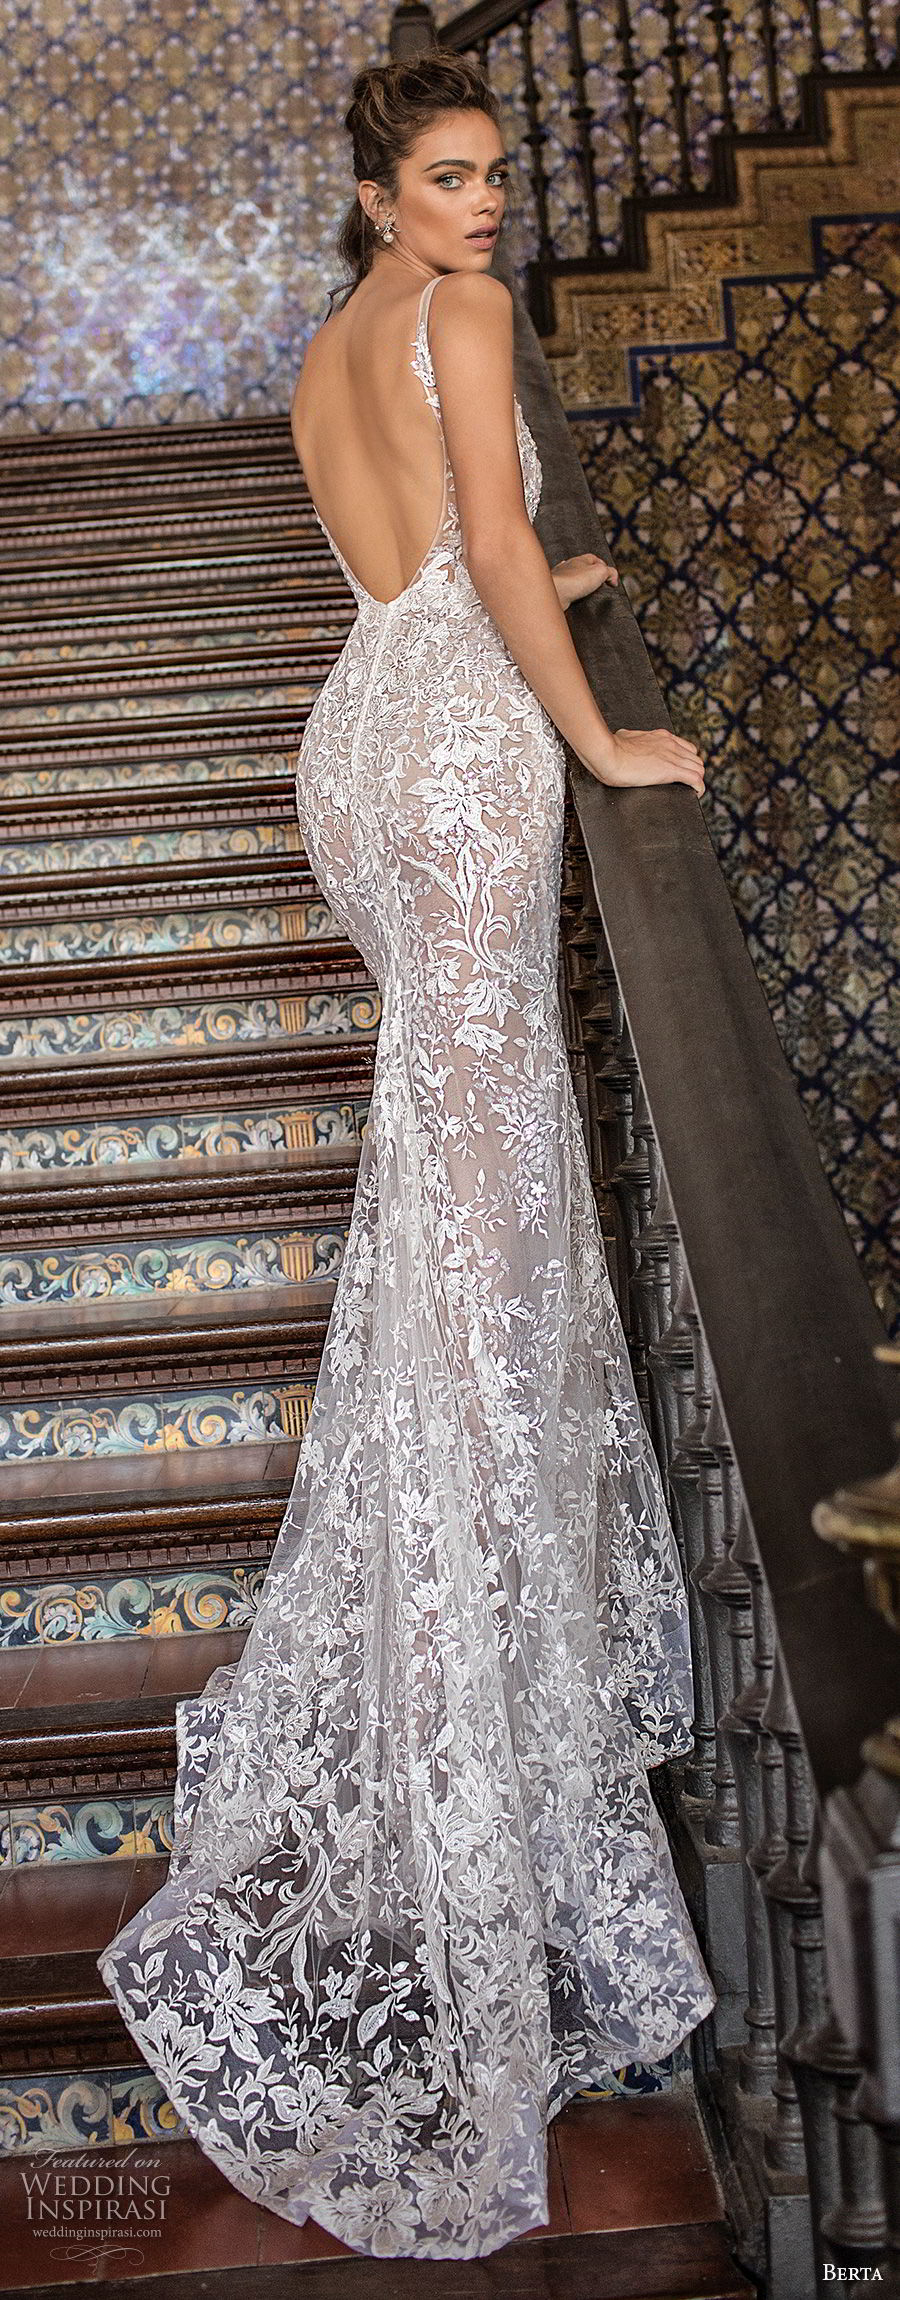 berta fall 2018 bridal sleeveless thin strap deep plunging sweetheart neckline elegant sexy fit and flare wedding dress open scoop back sweep train (10) bv